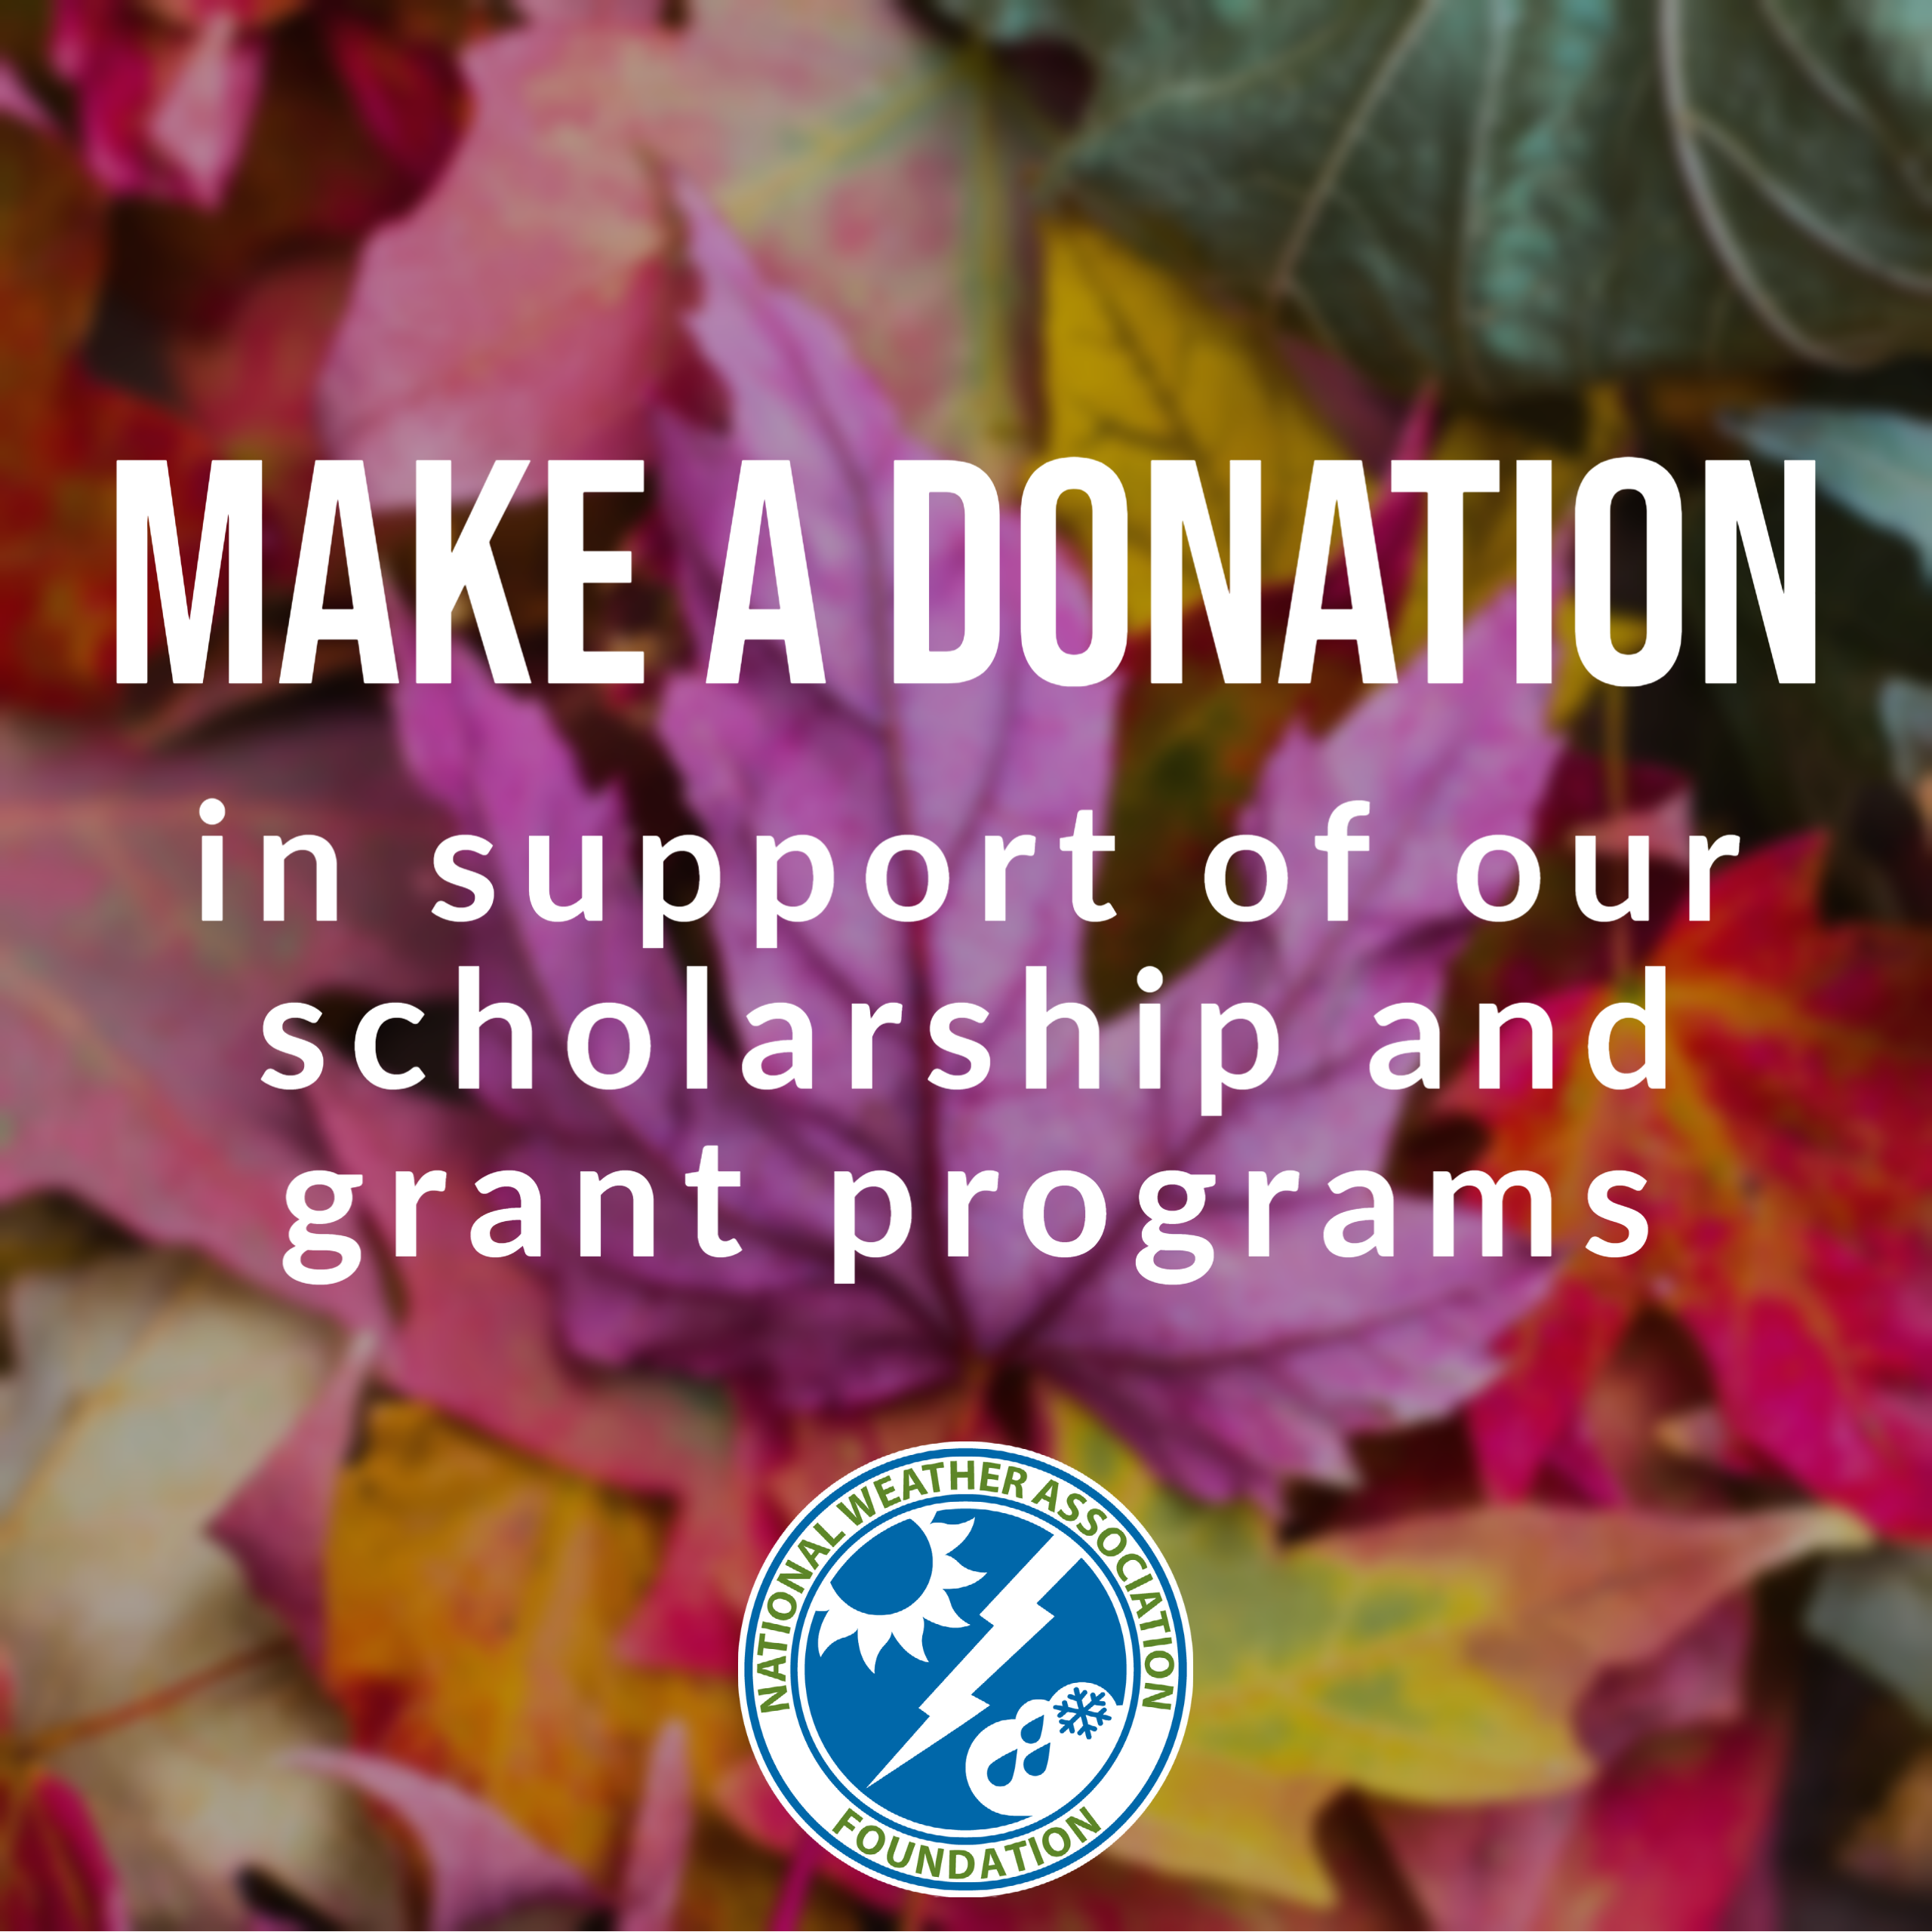 Make a Donation in support of our scholarship and grant programs through the National Weather Association Foundation